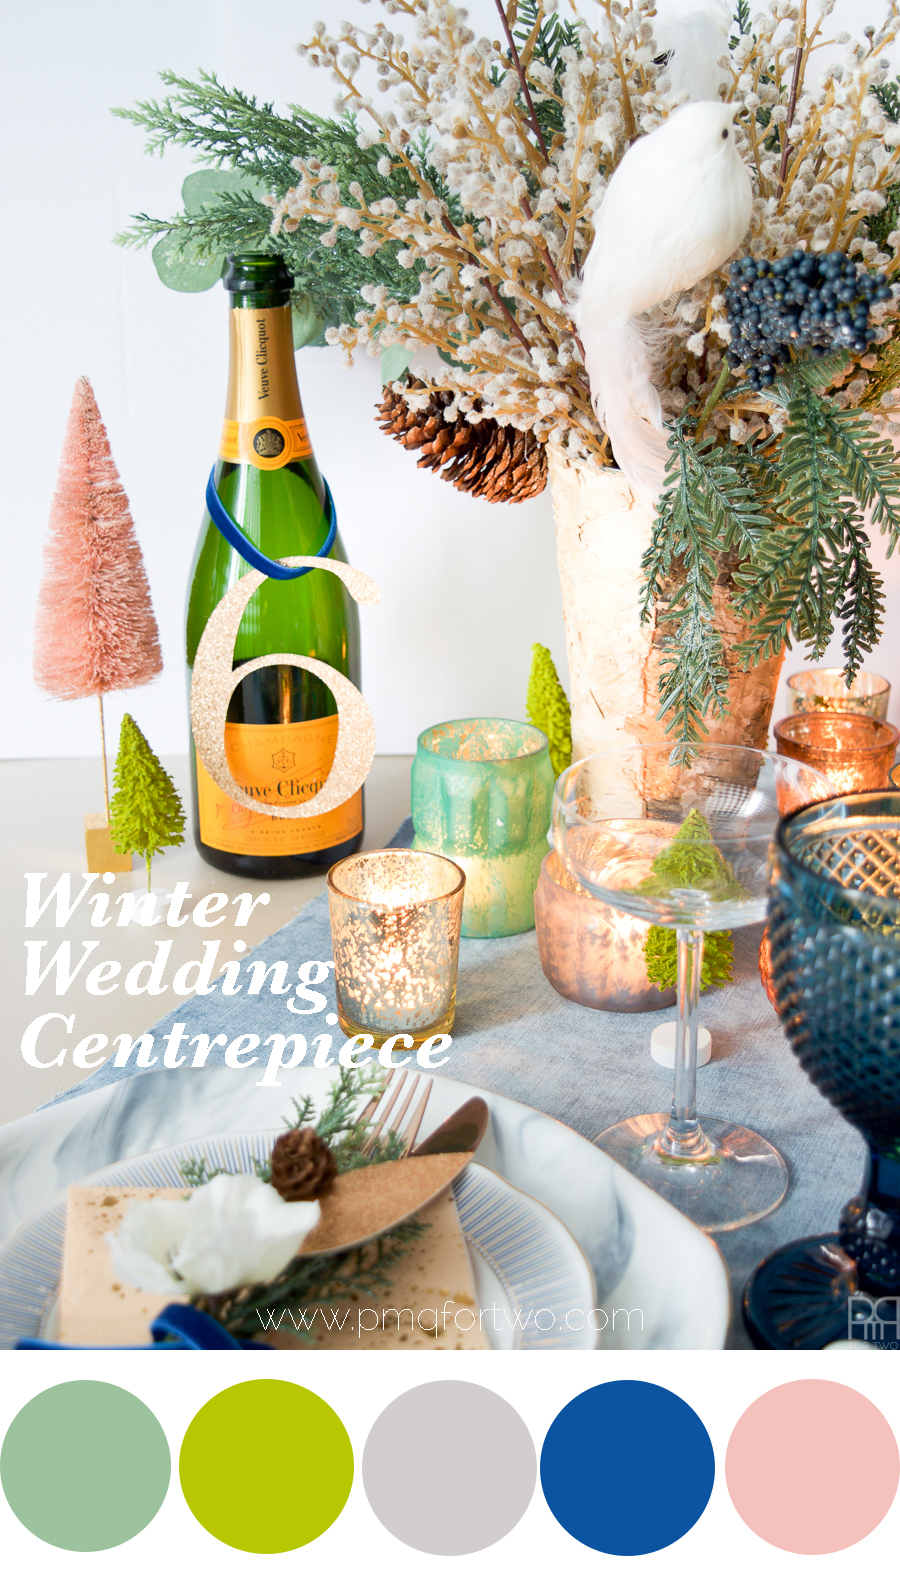 A Winter wedding Centrepiece full of greens, blues and a hint of pink! You can create a subtle winter wonderland using unexpected hues and lots of stunning faux florals. It's easier than you think!